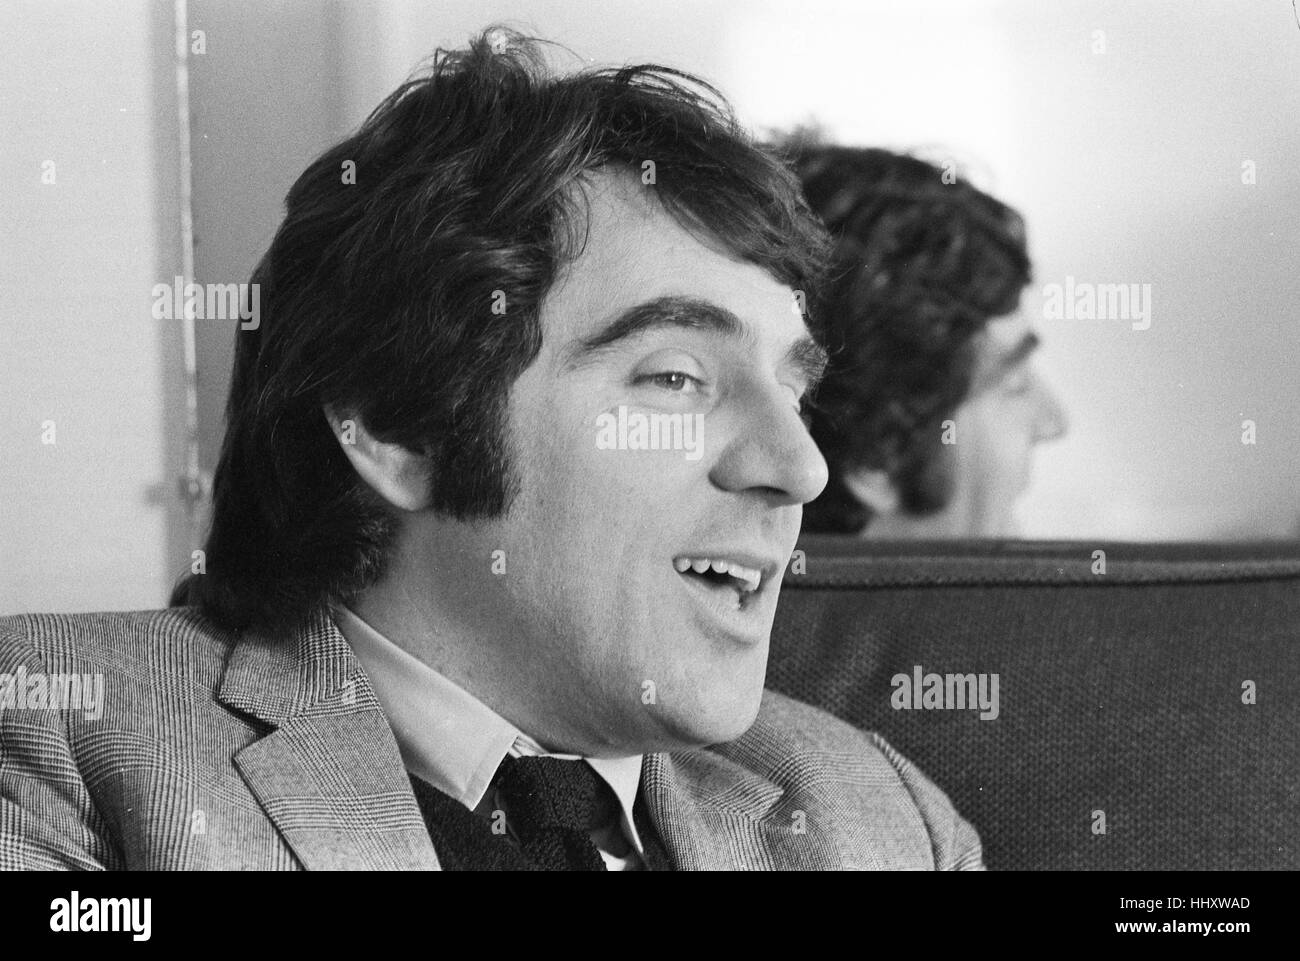 Anthony Newley, photographed during an interview in 1968 - Stock Image